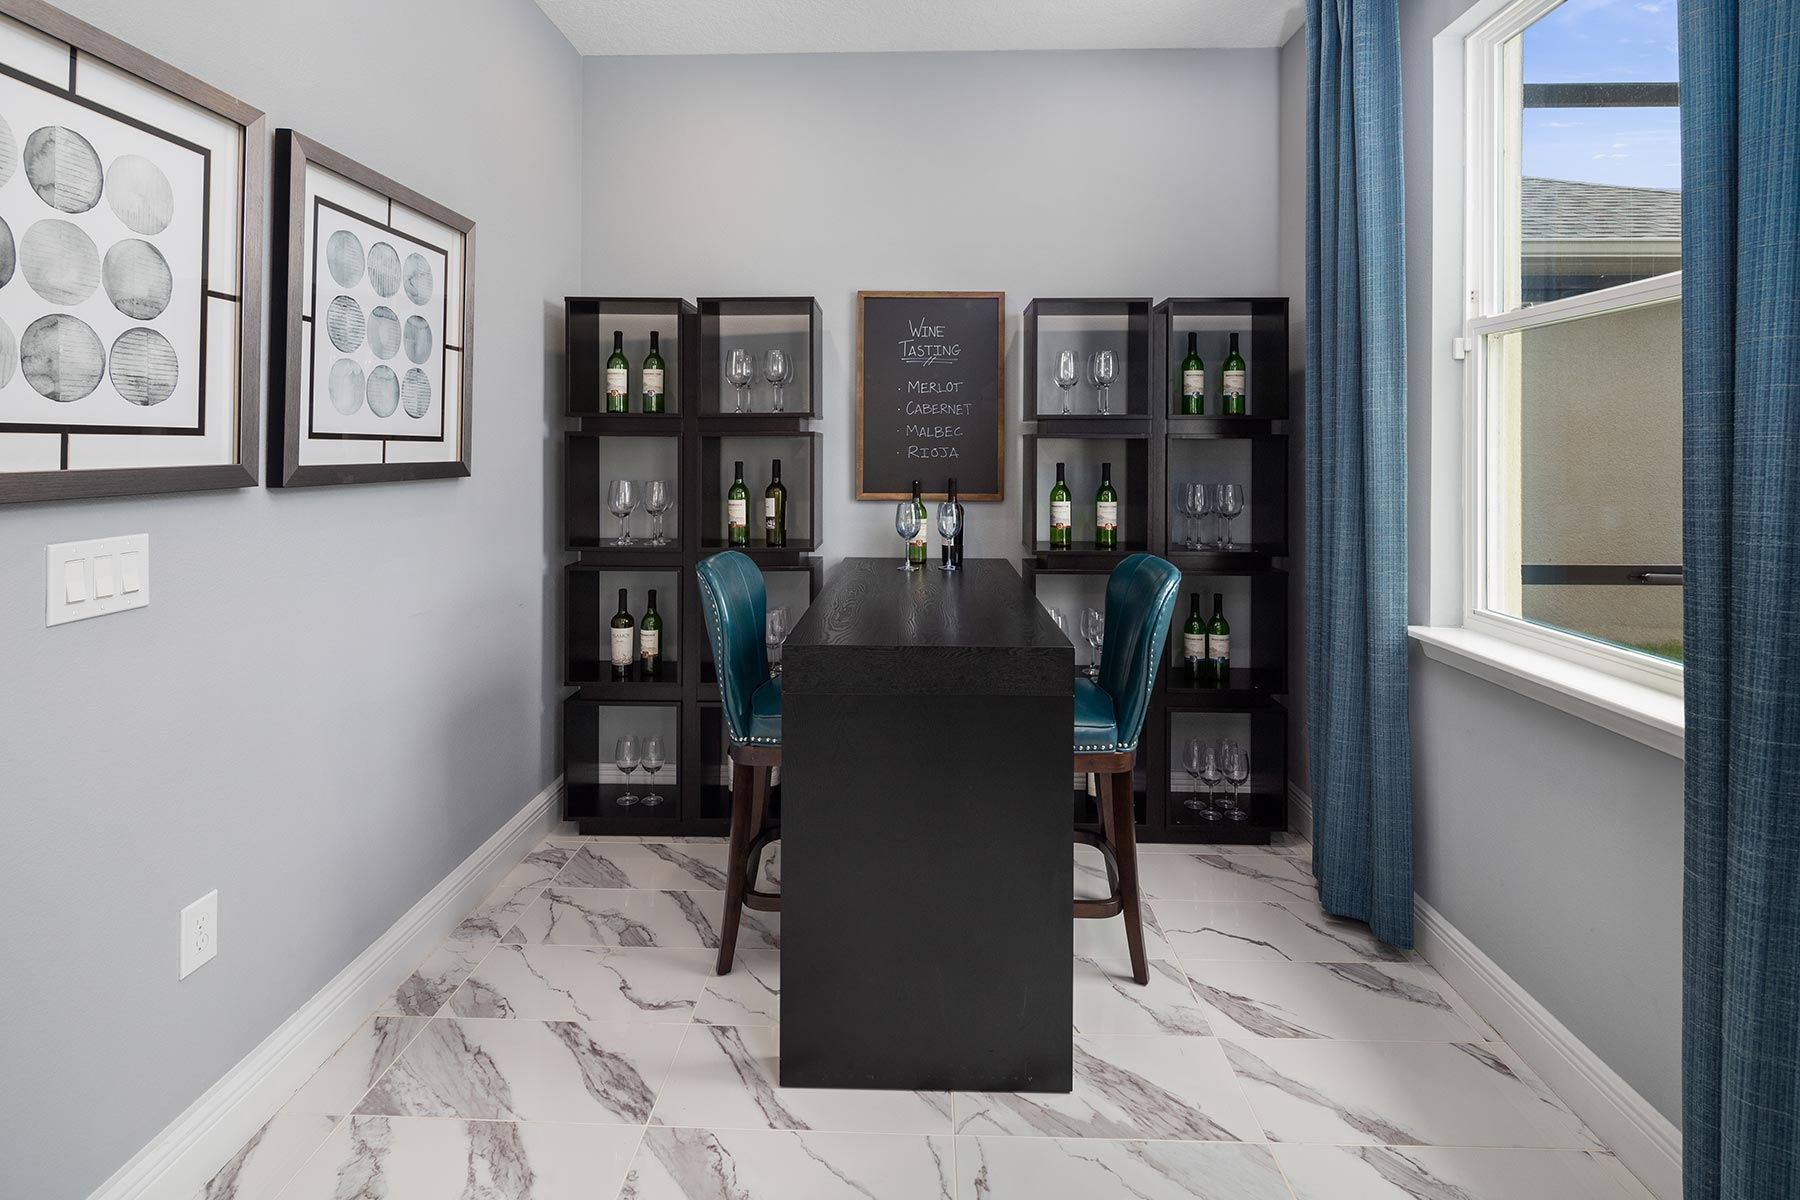 Canon Plan Study Room at Tohoqua in Kissimmee Florida by Mattamy Homes